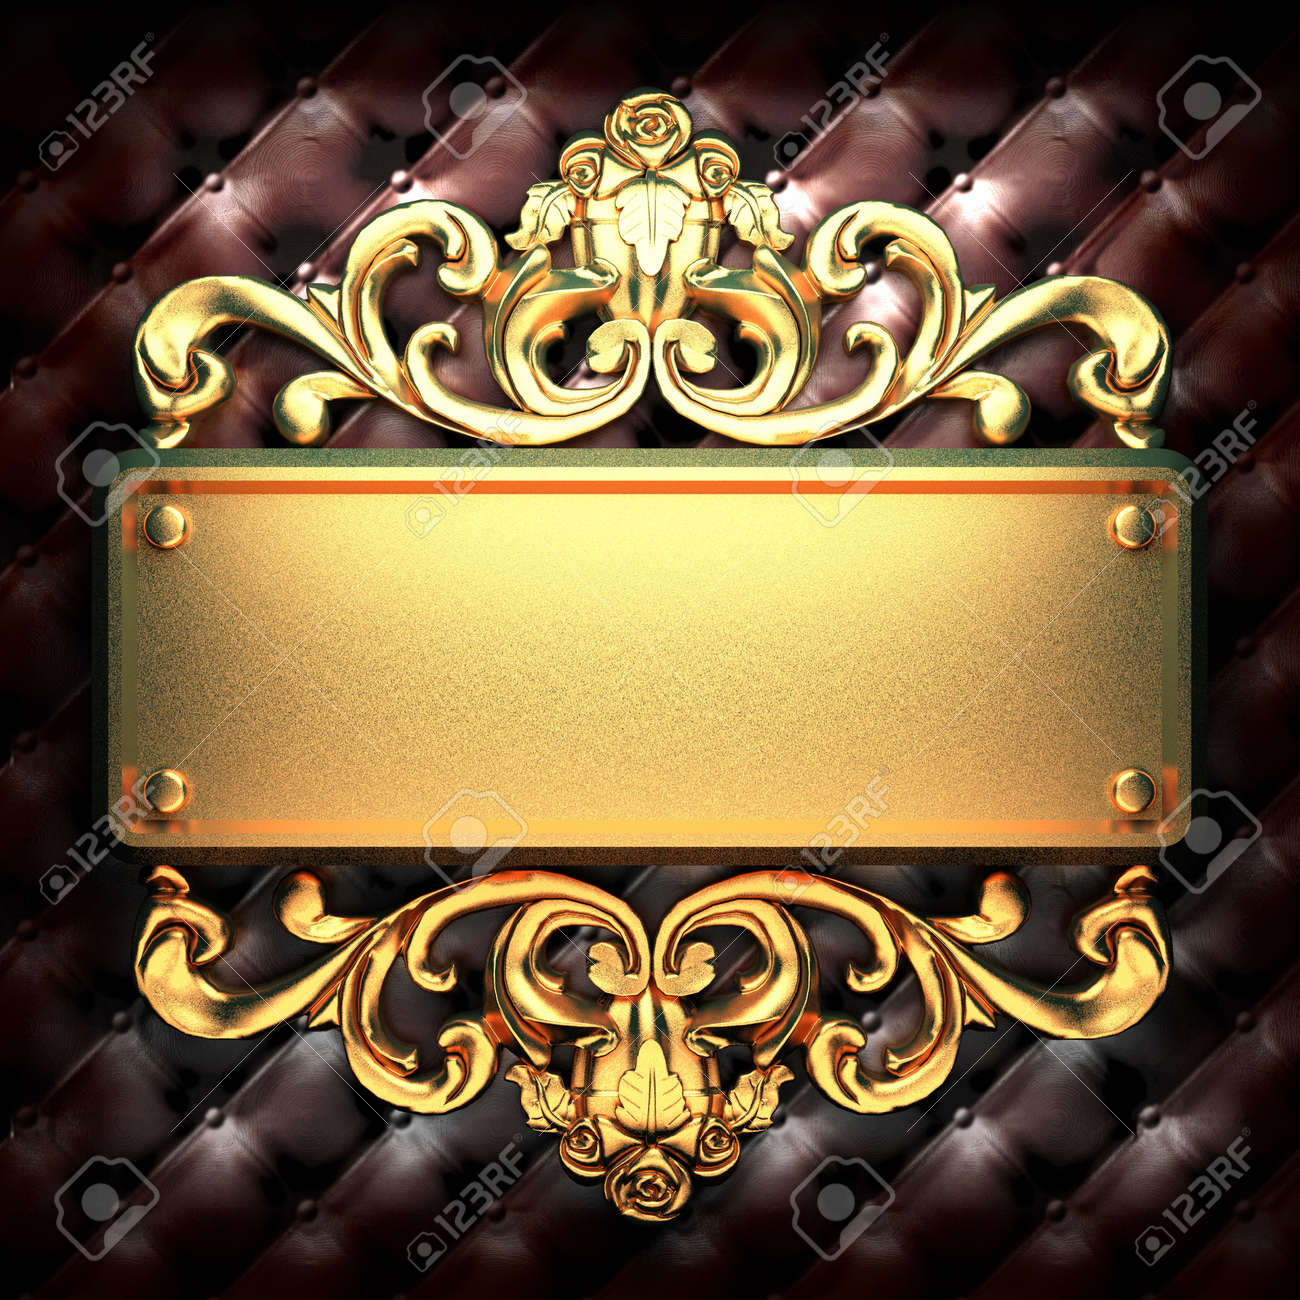 golden ornament on leather made in 3D Stock Photo - 7905273